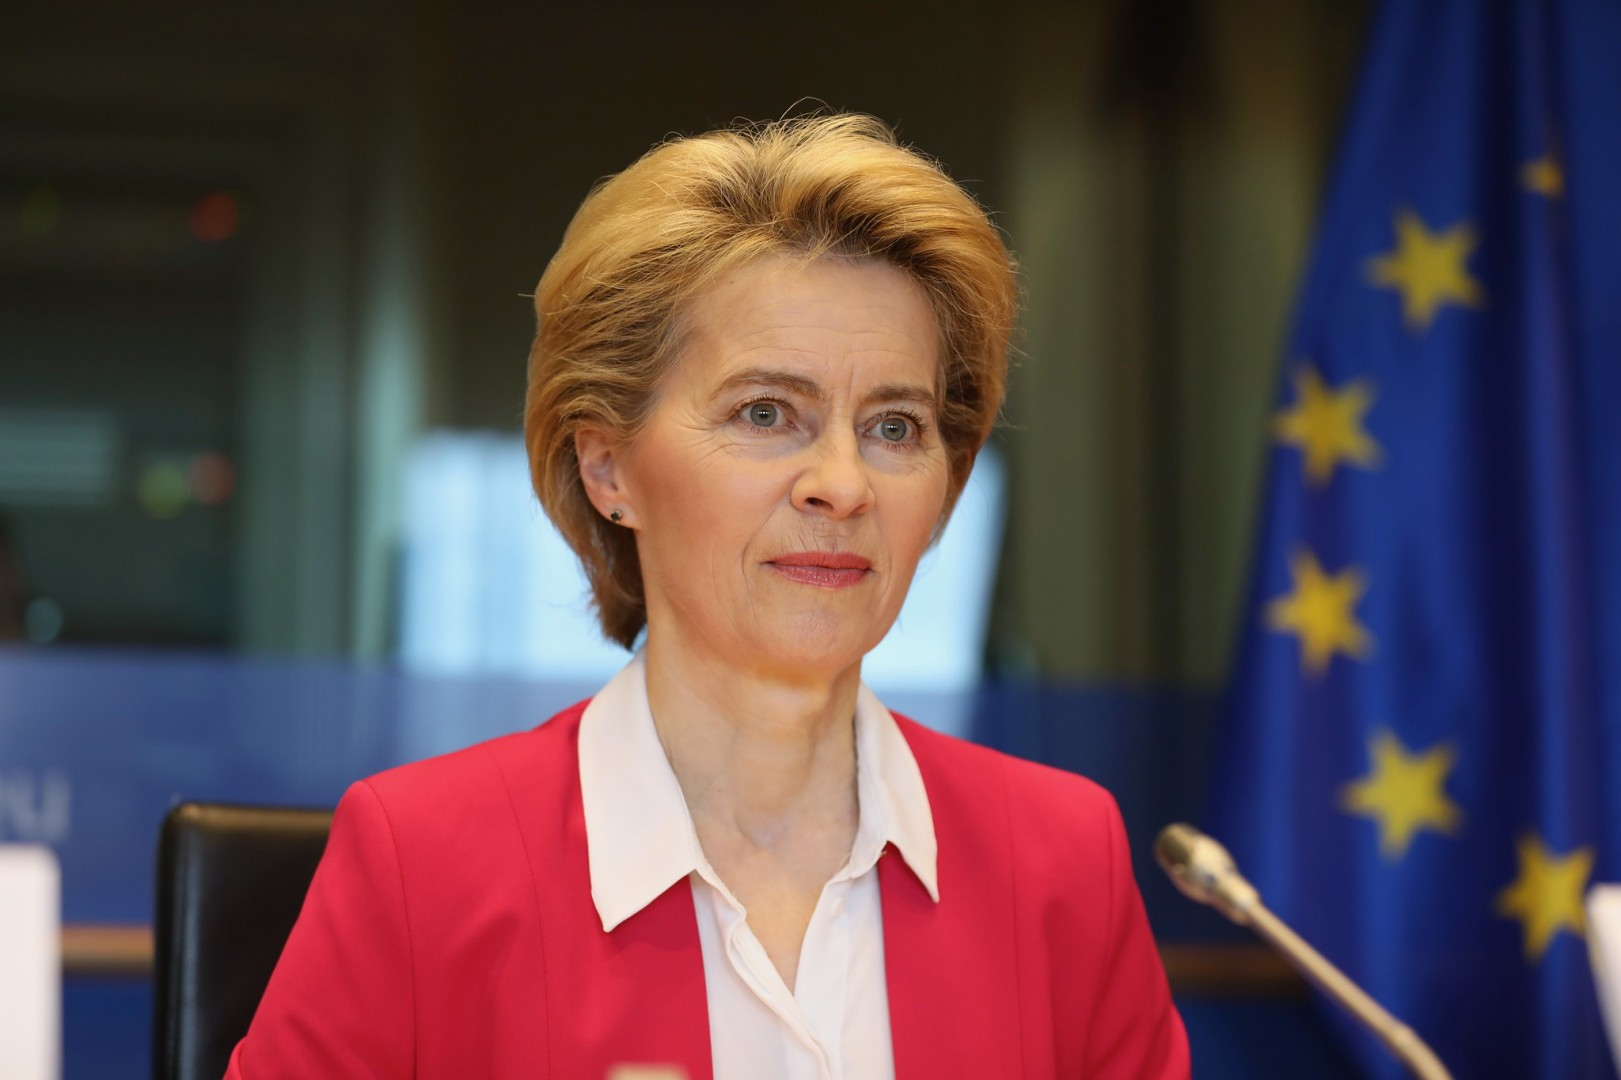 European Commission president Ursula von der Leyen. Image credit: Renew Europe / Flickr